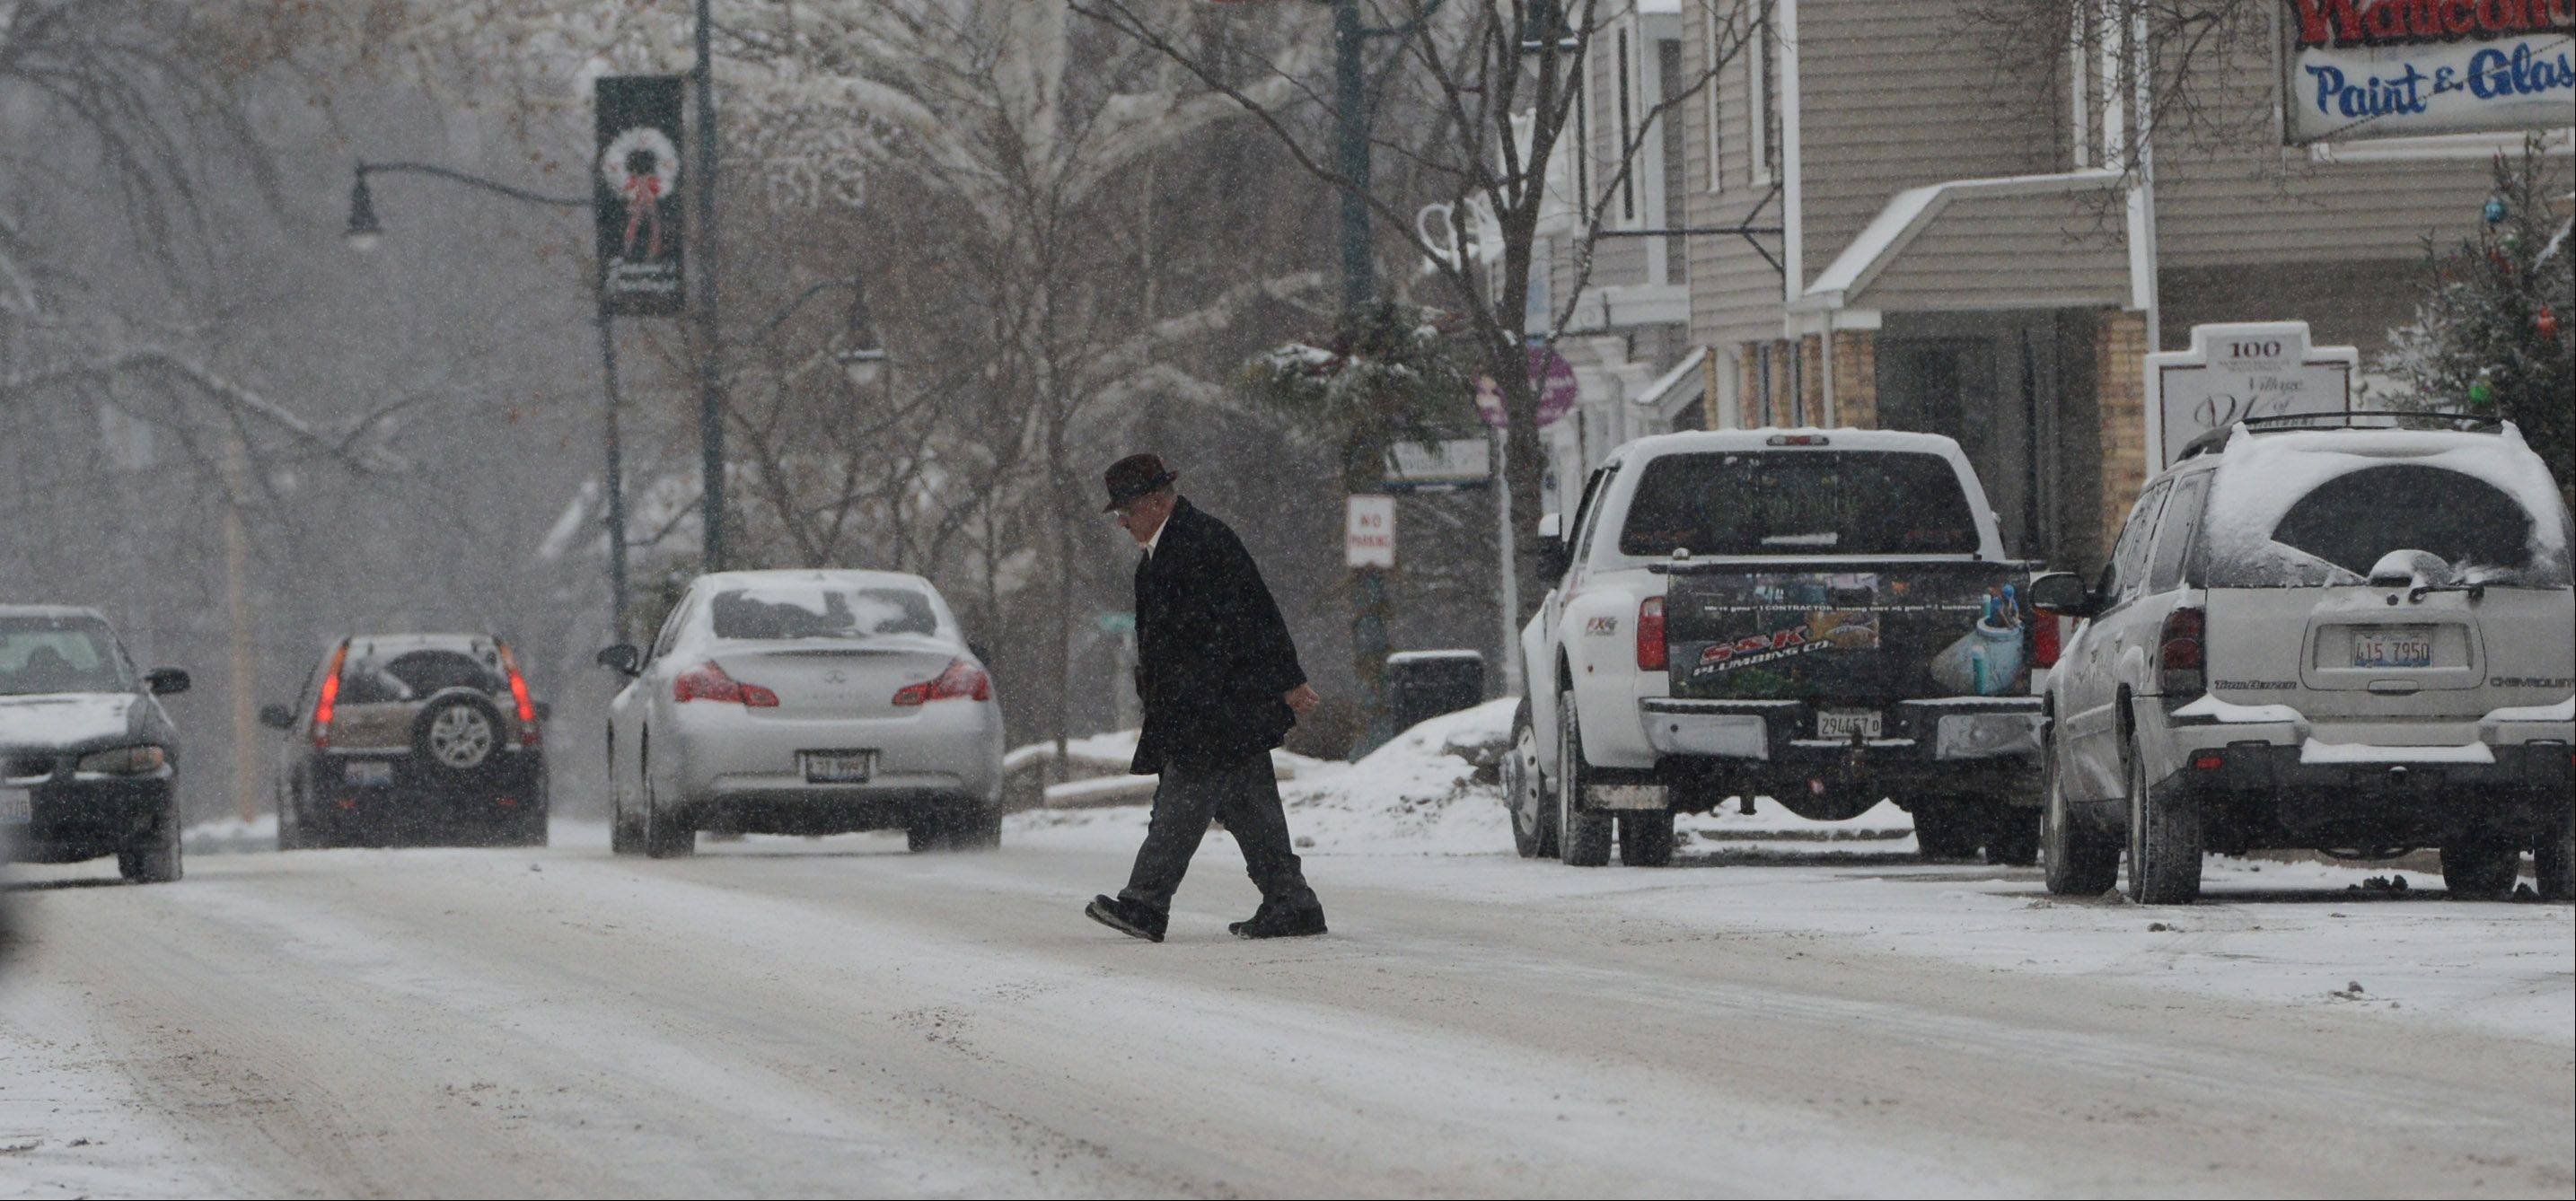 Pedestrians make their way across a snow-covered Main Street in downtown Wauconda Tuesday as a winter storm moves into the area.